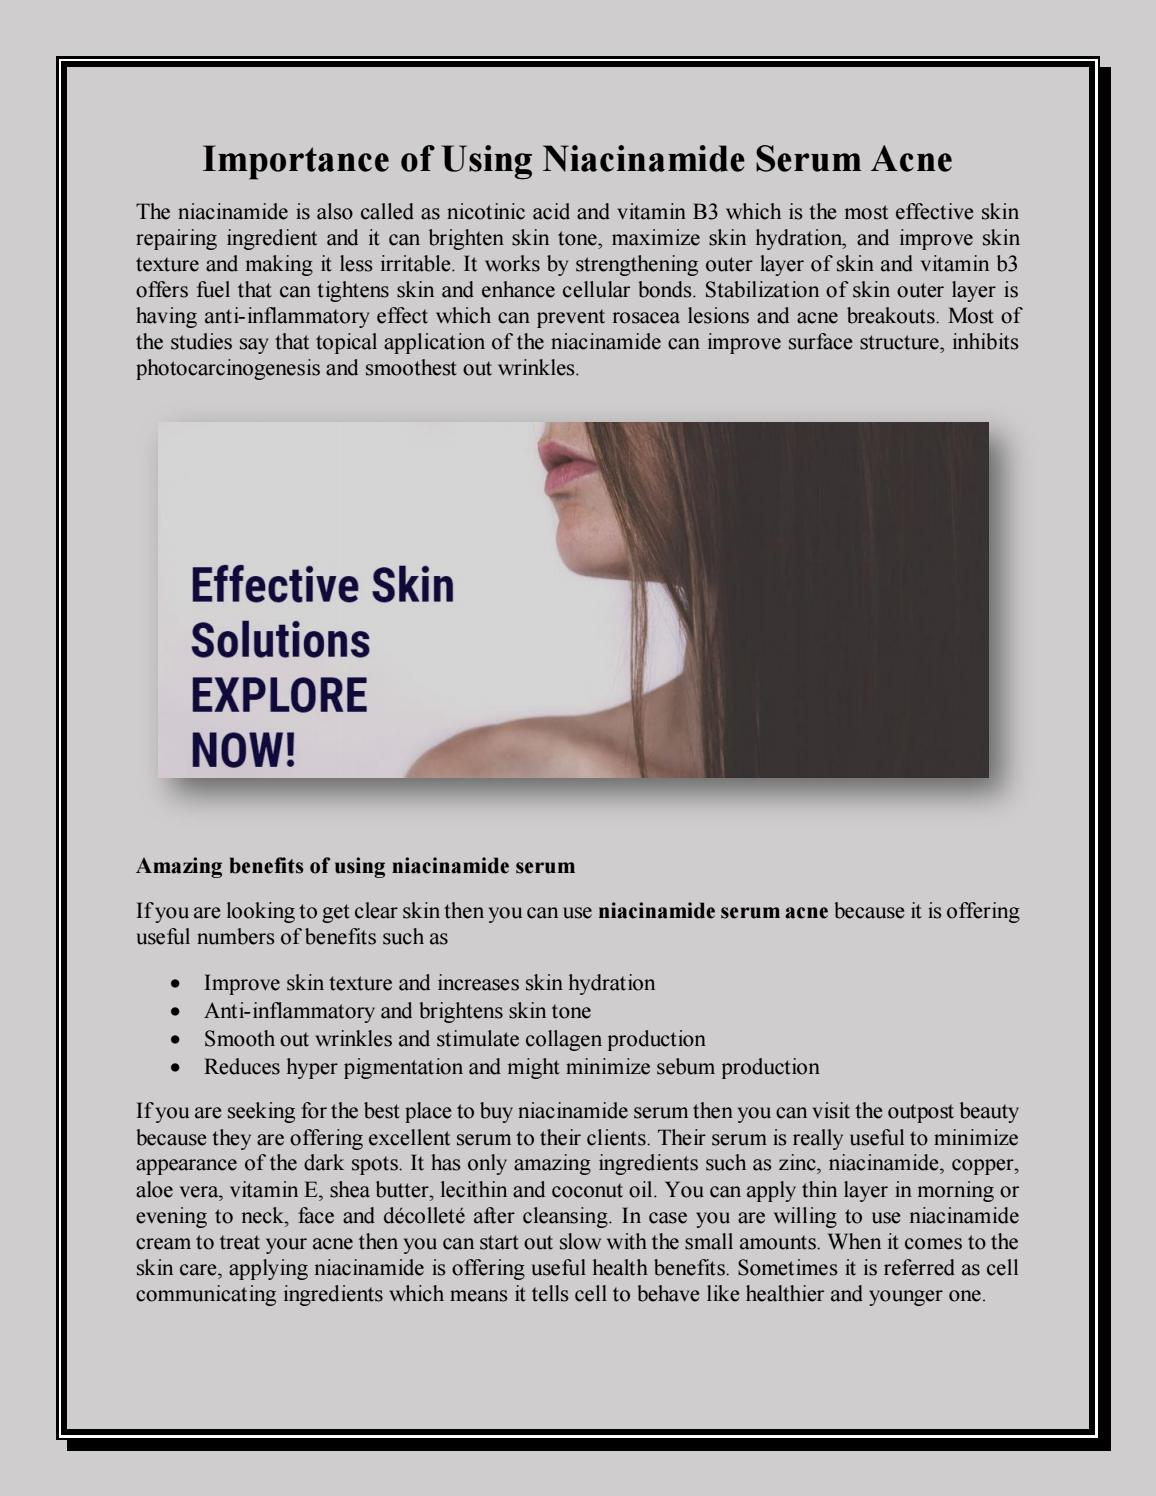 Importance Of Using Niacinamide Serum Acne By Theoutpostbeauty Issuu